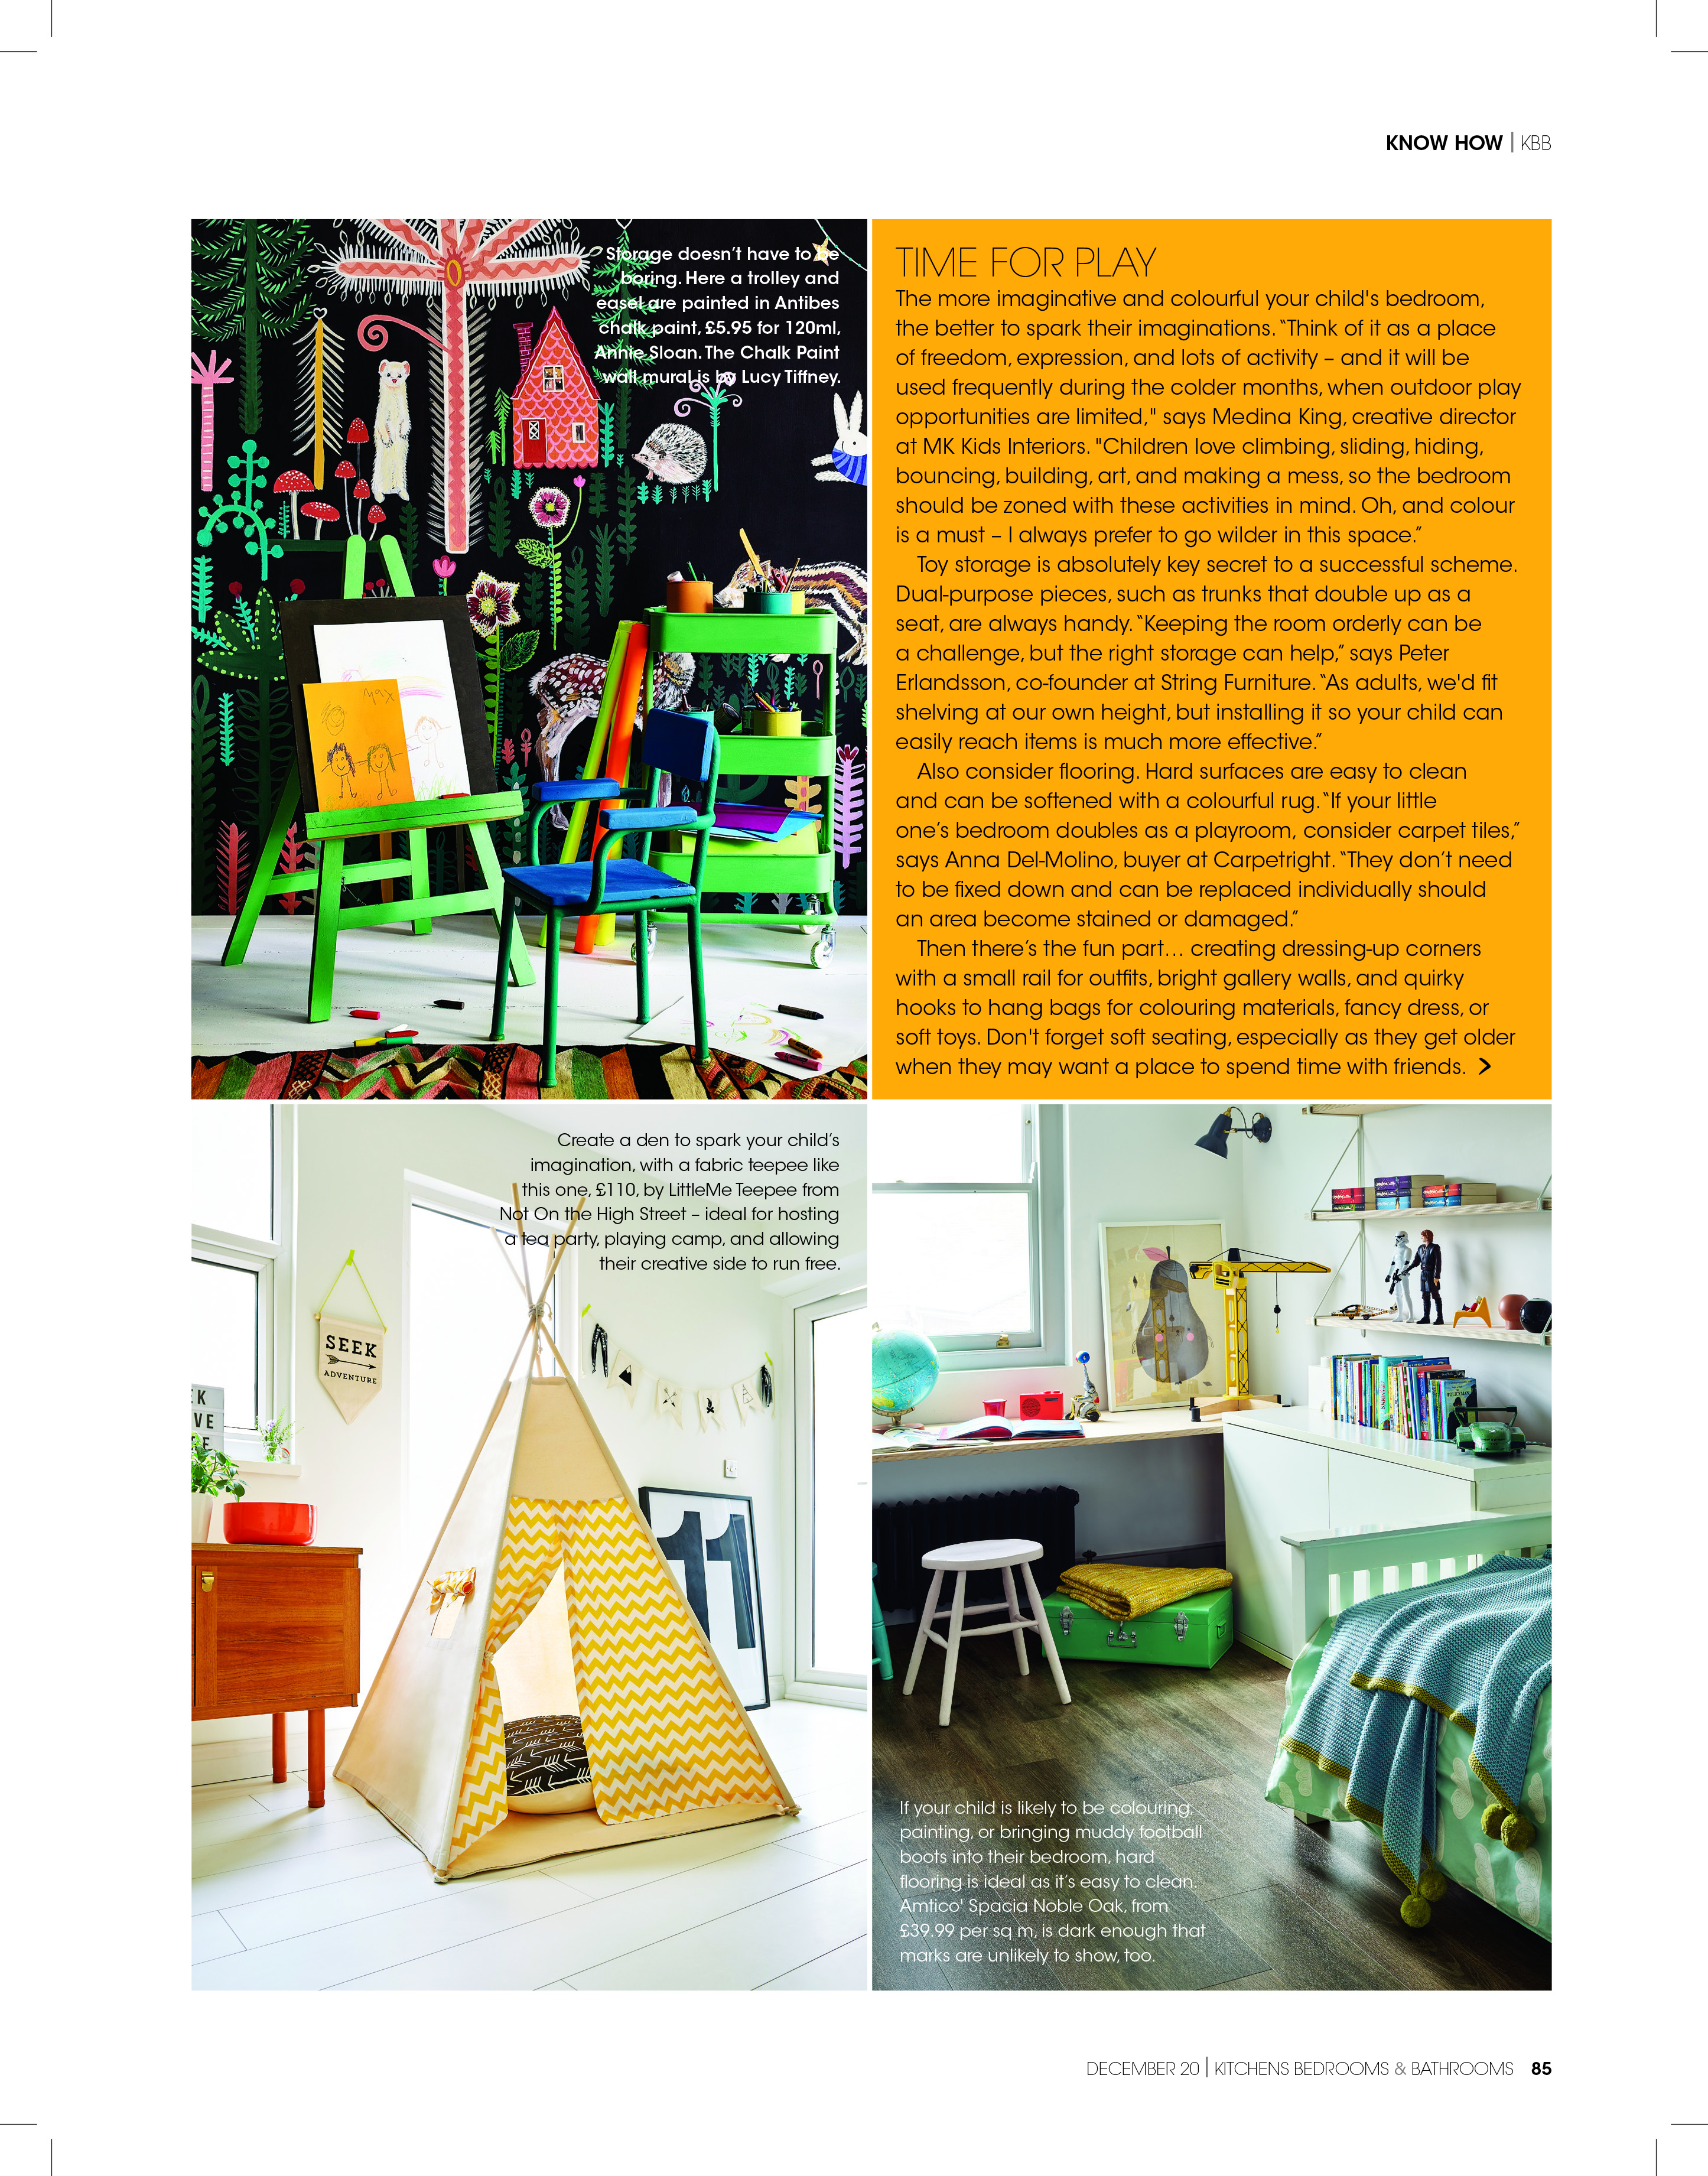 Magazine page divided into 4 sections with images of a teepees, a blackboard and a bedroom